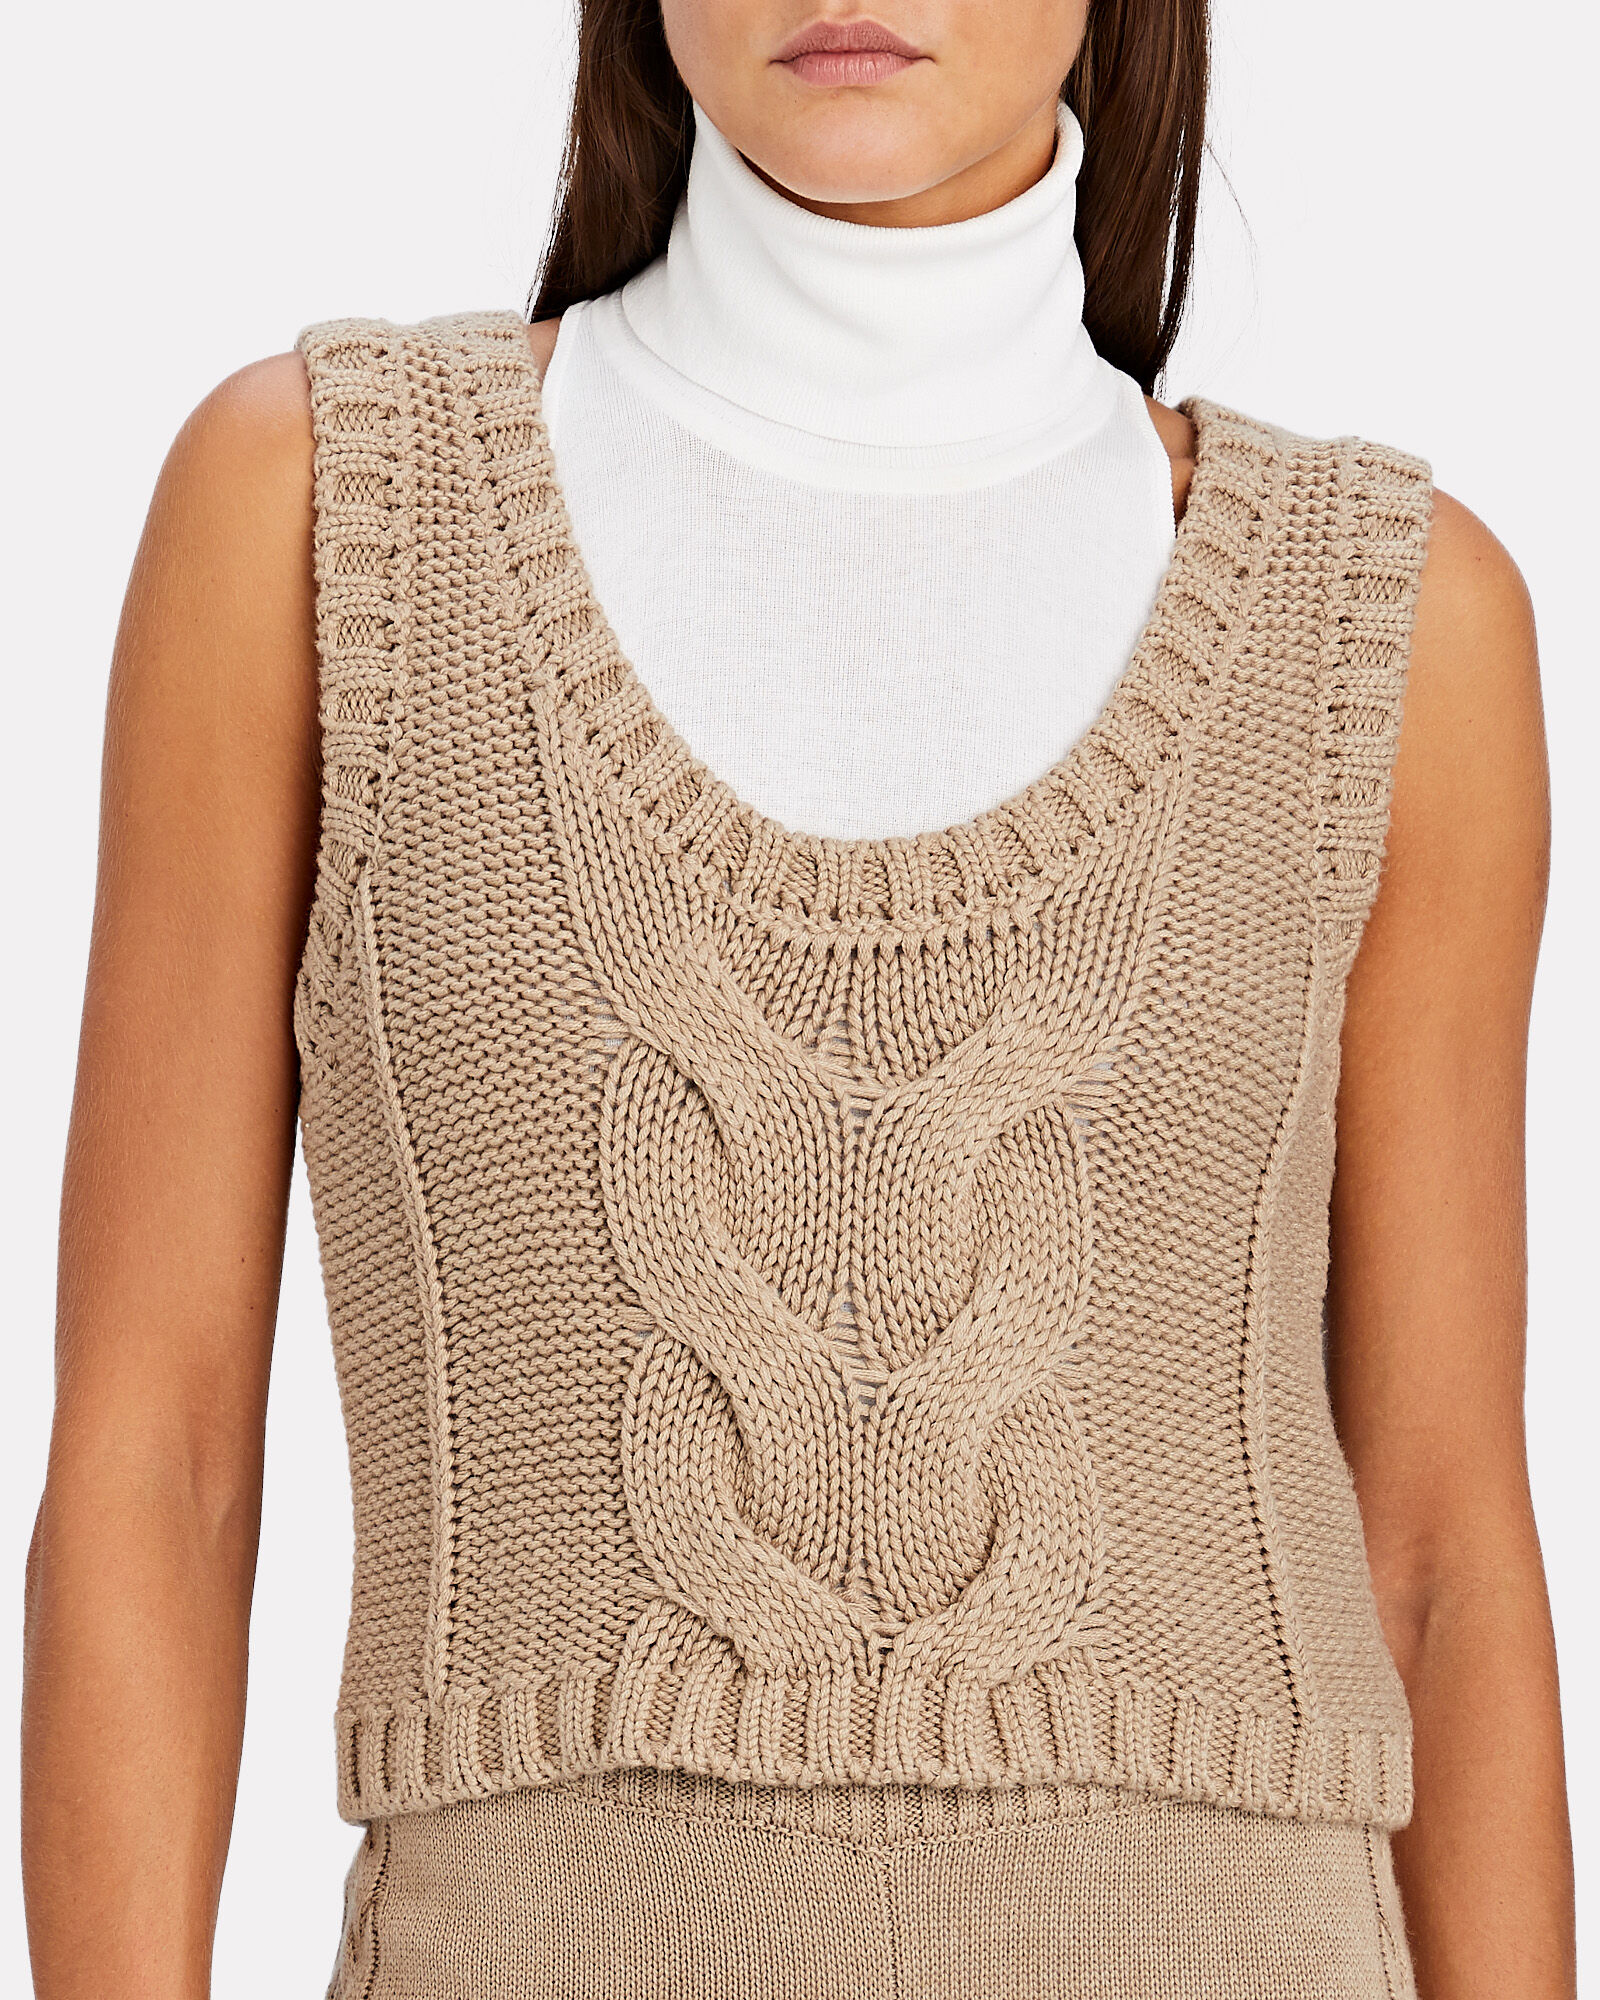 Kind Cable Knit Sleeveless Sweater, BEIGE, hi-res